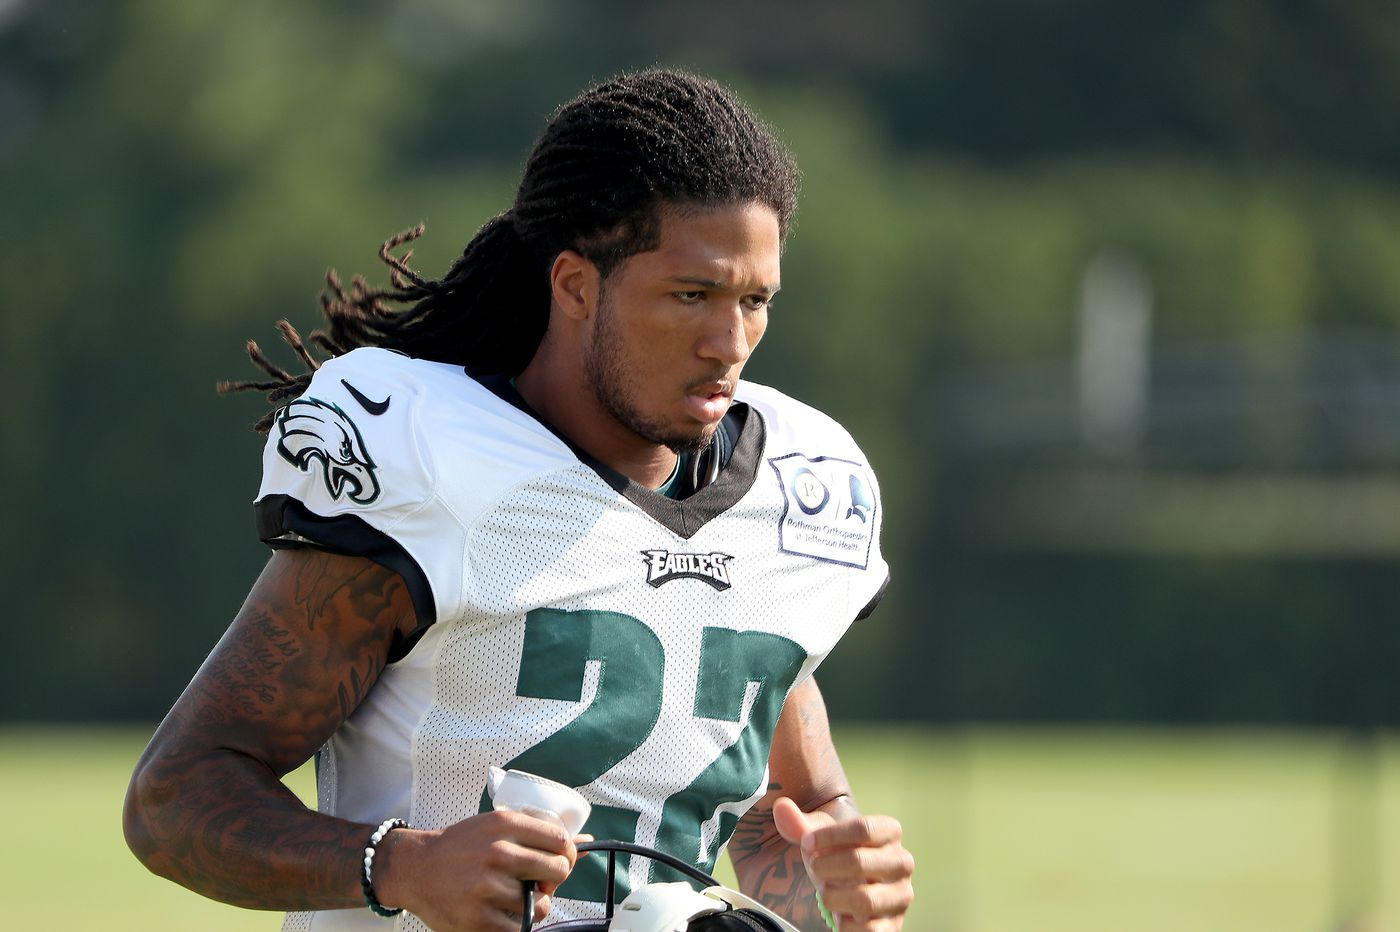 Eagles practice observations: Who's trending up? Who's trending down?